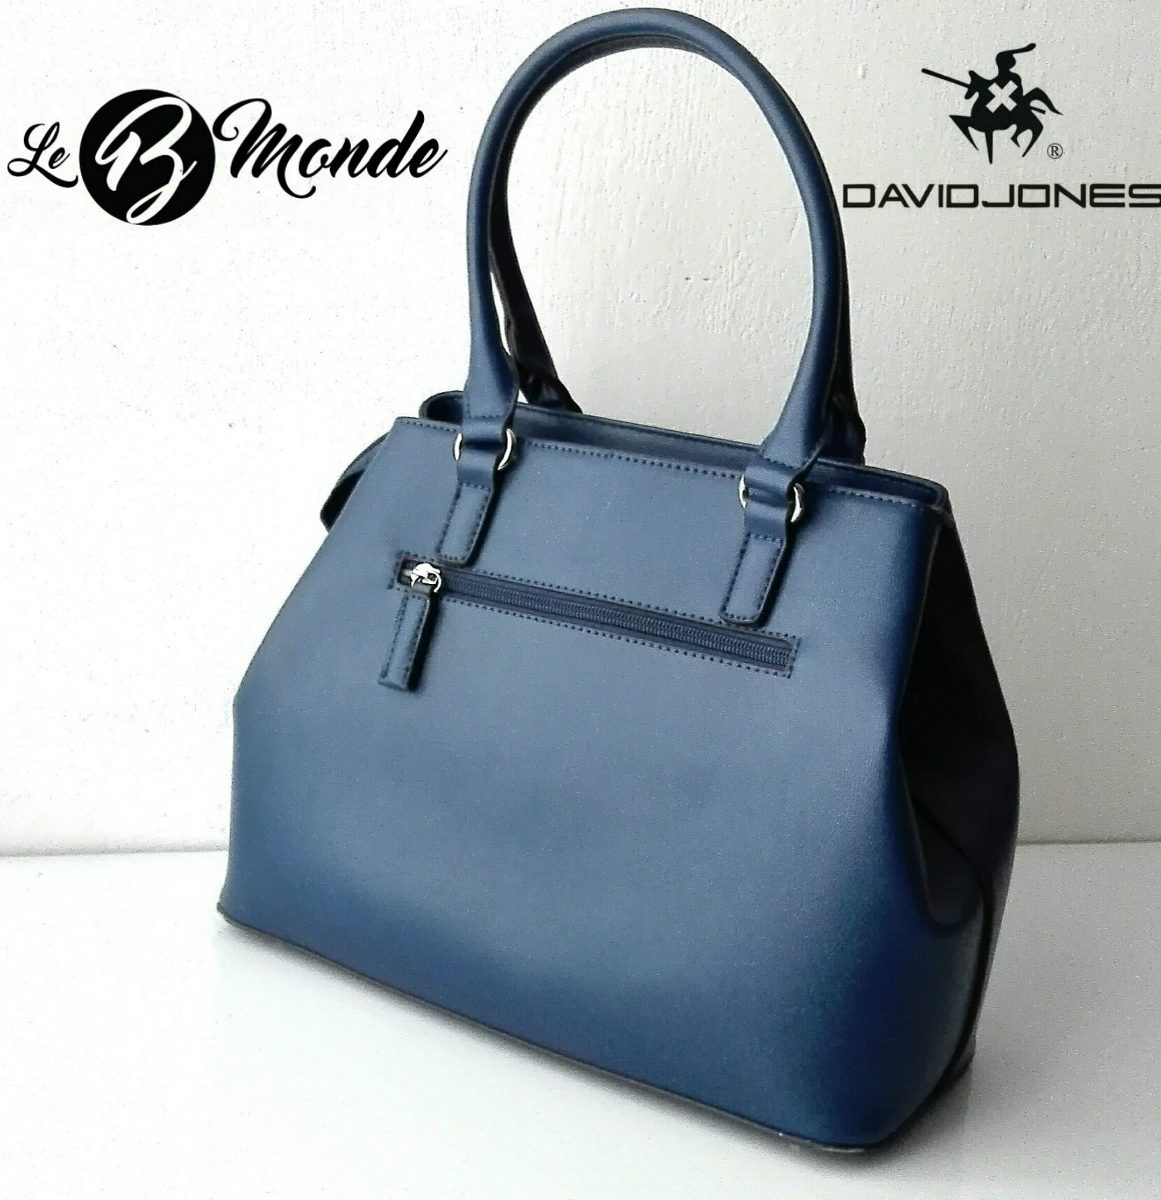 Bolsa De Ombro David Jones : Bolsas de mano david jones en mercado libre